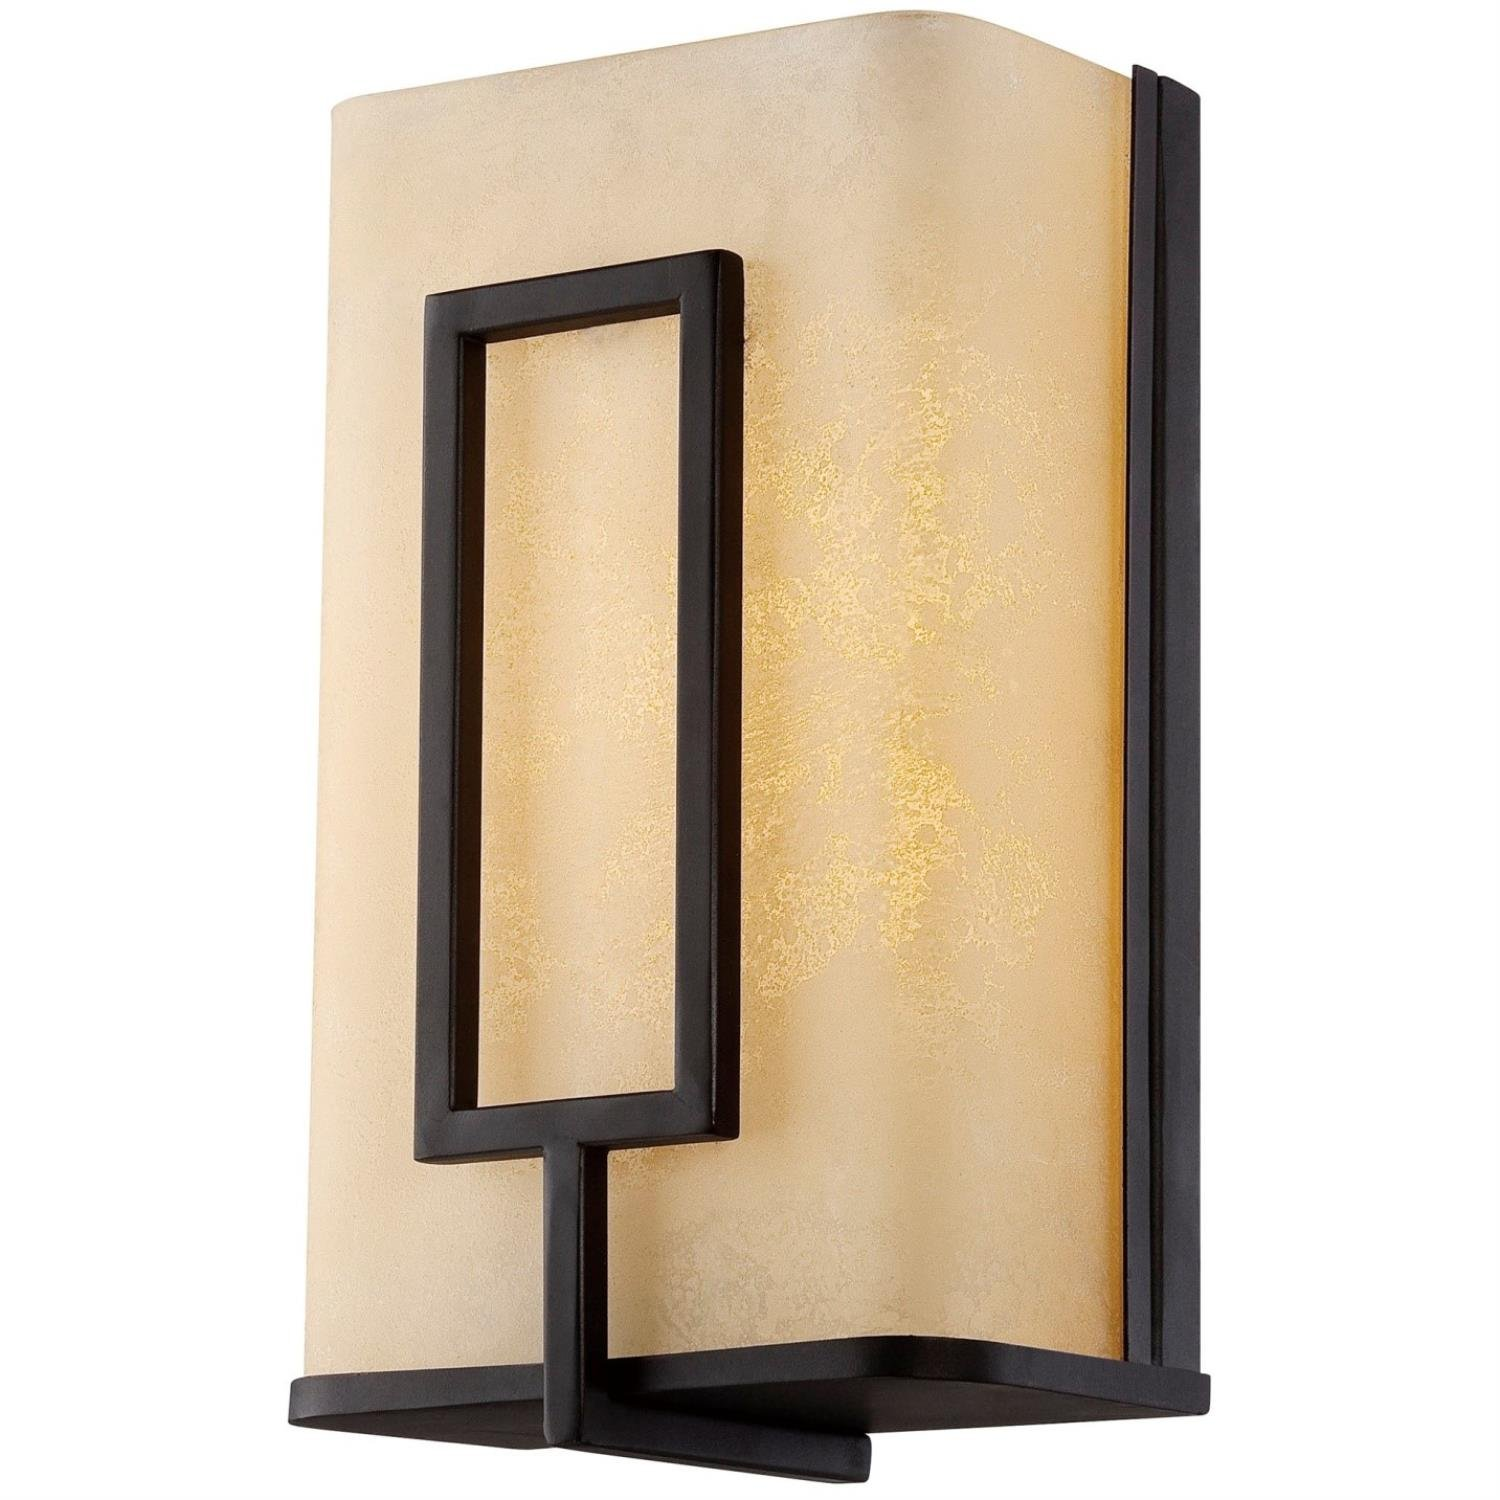 LB74121 LED Wall Sconce, Oil Rubbed Bronze with Amber Alabaster ...